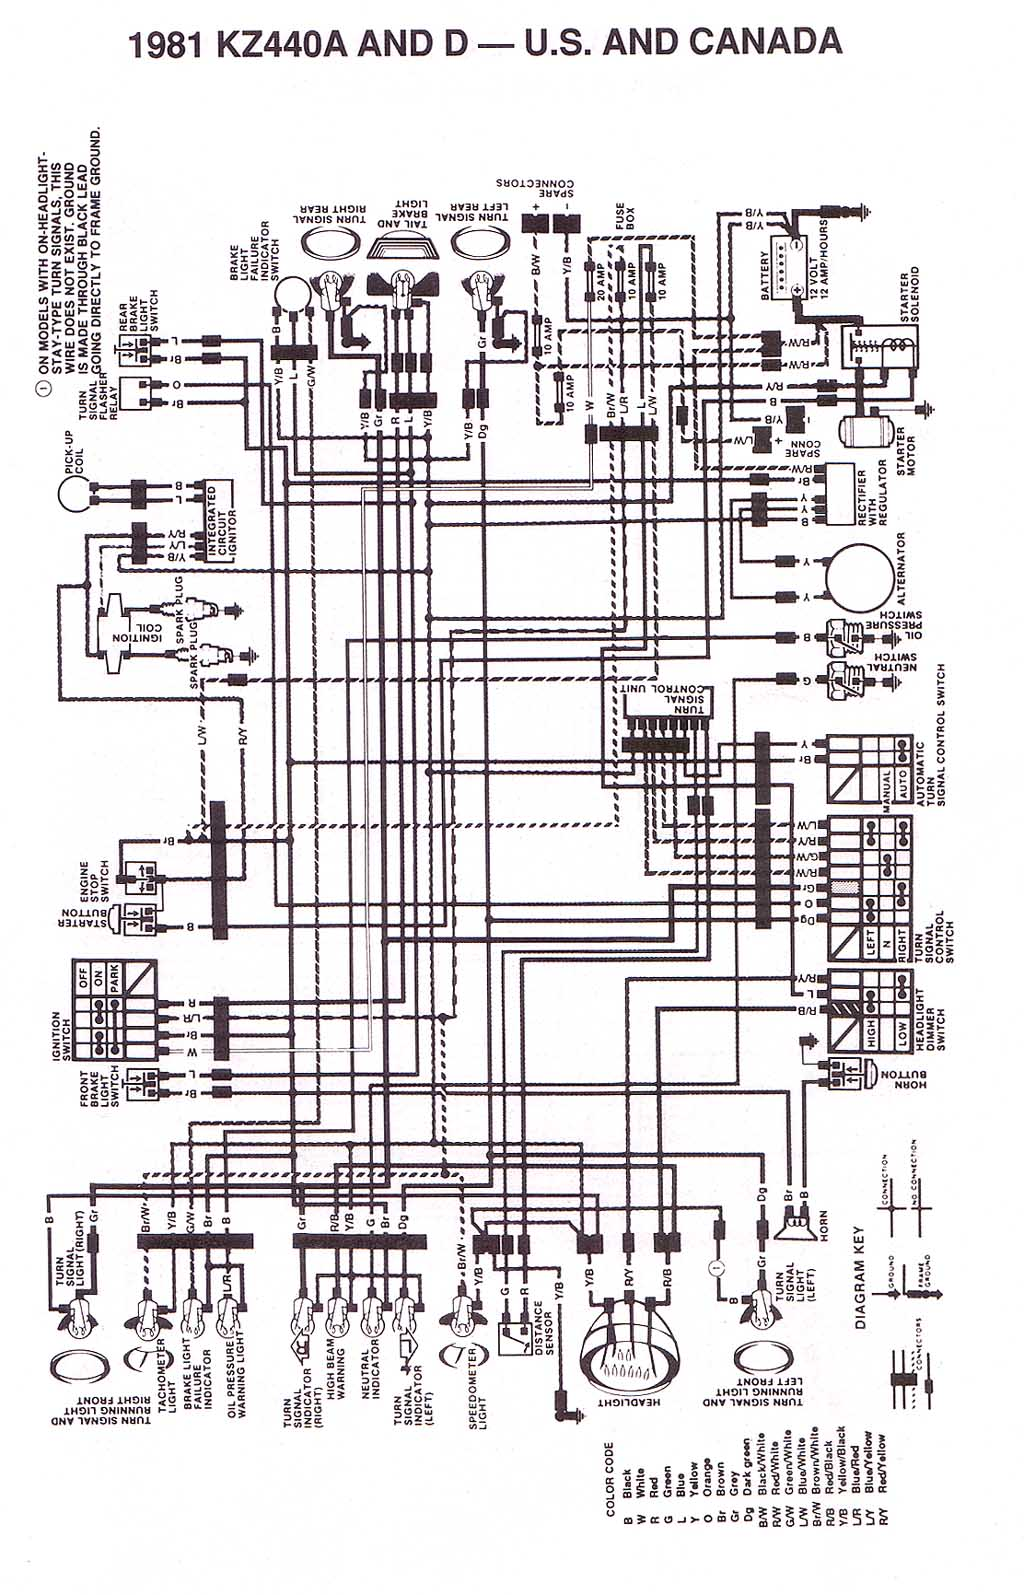 KZ440A and D wiring diagram %28US%29 1981 kawasaki ltd 440 rebuild thread page 5 barf bay area 1981 kawasaki 440 ltd wiring diagram at n-0.co